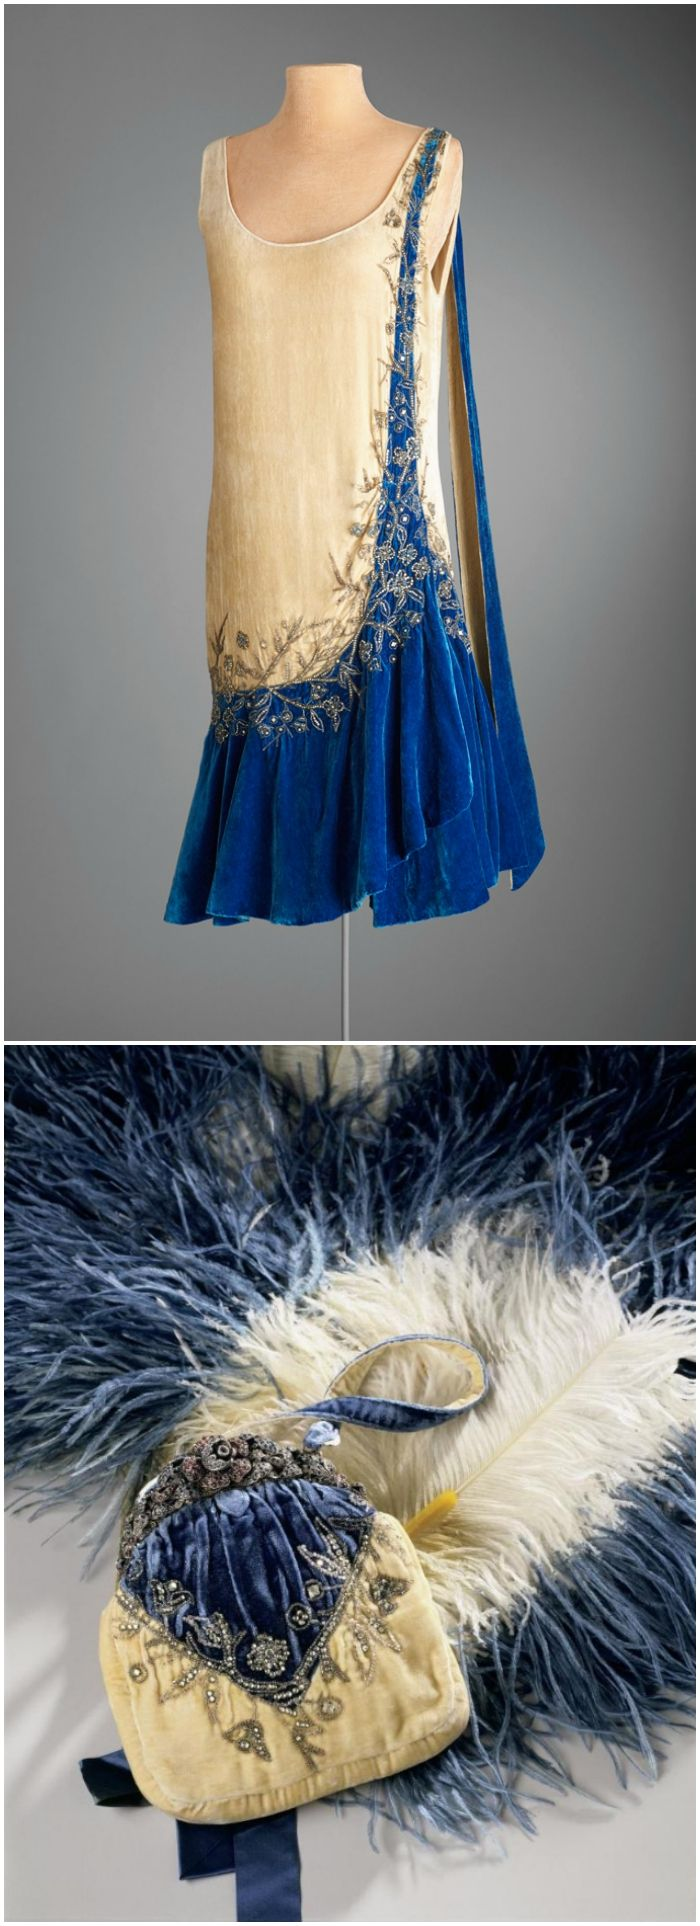 Marjorie Merriweather Post's evening dress and…